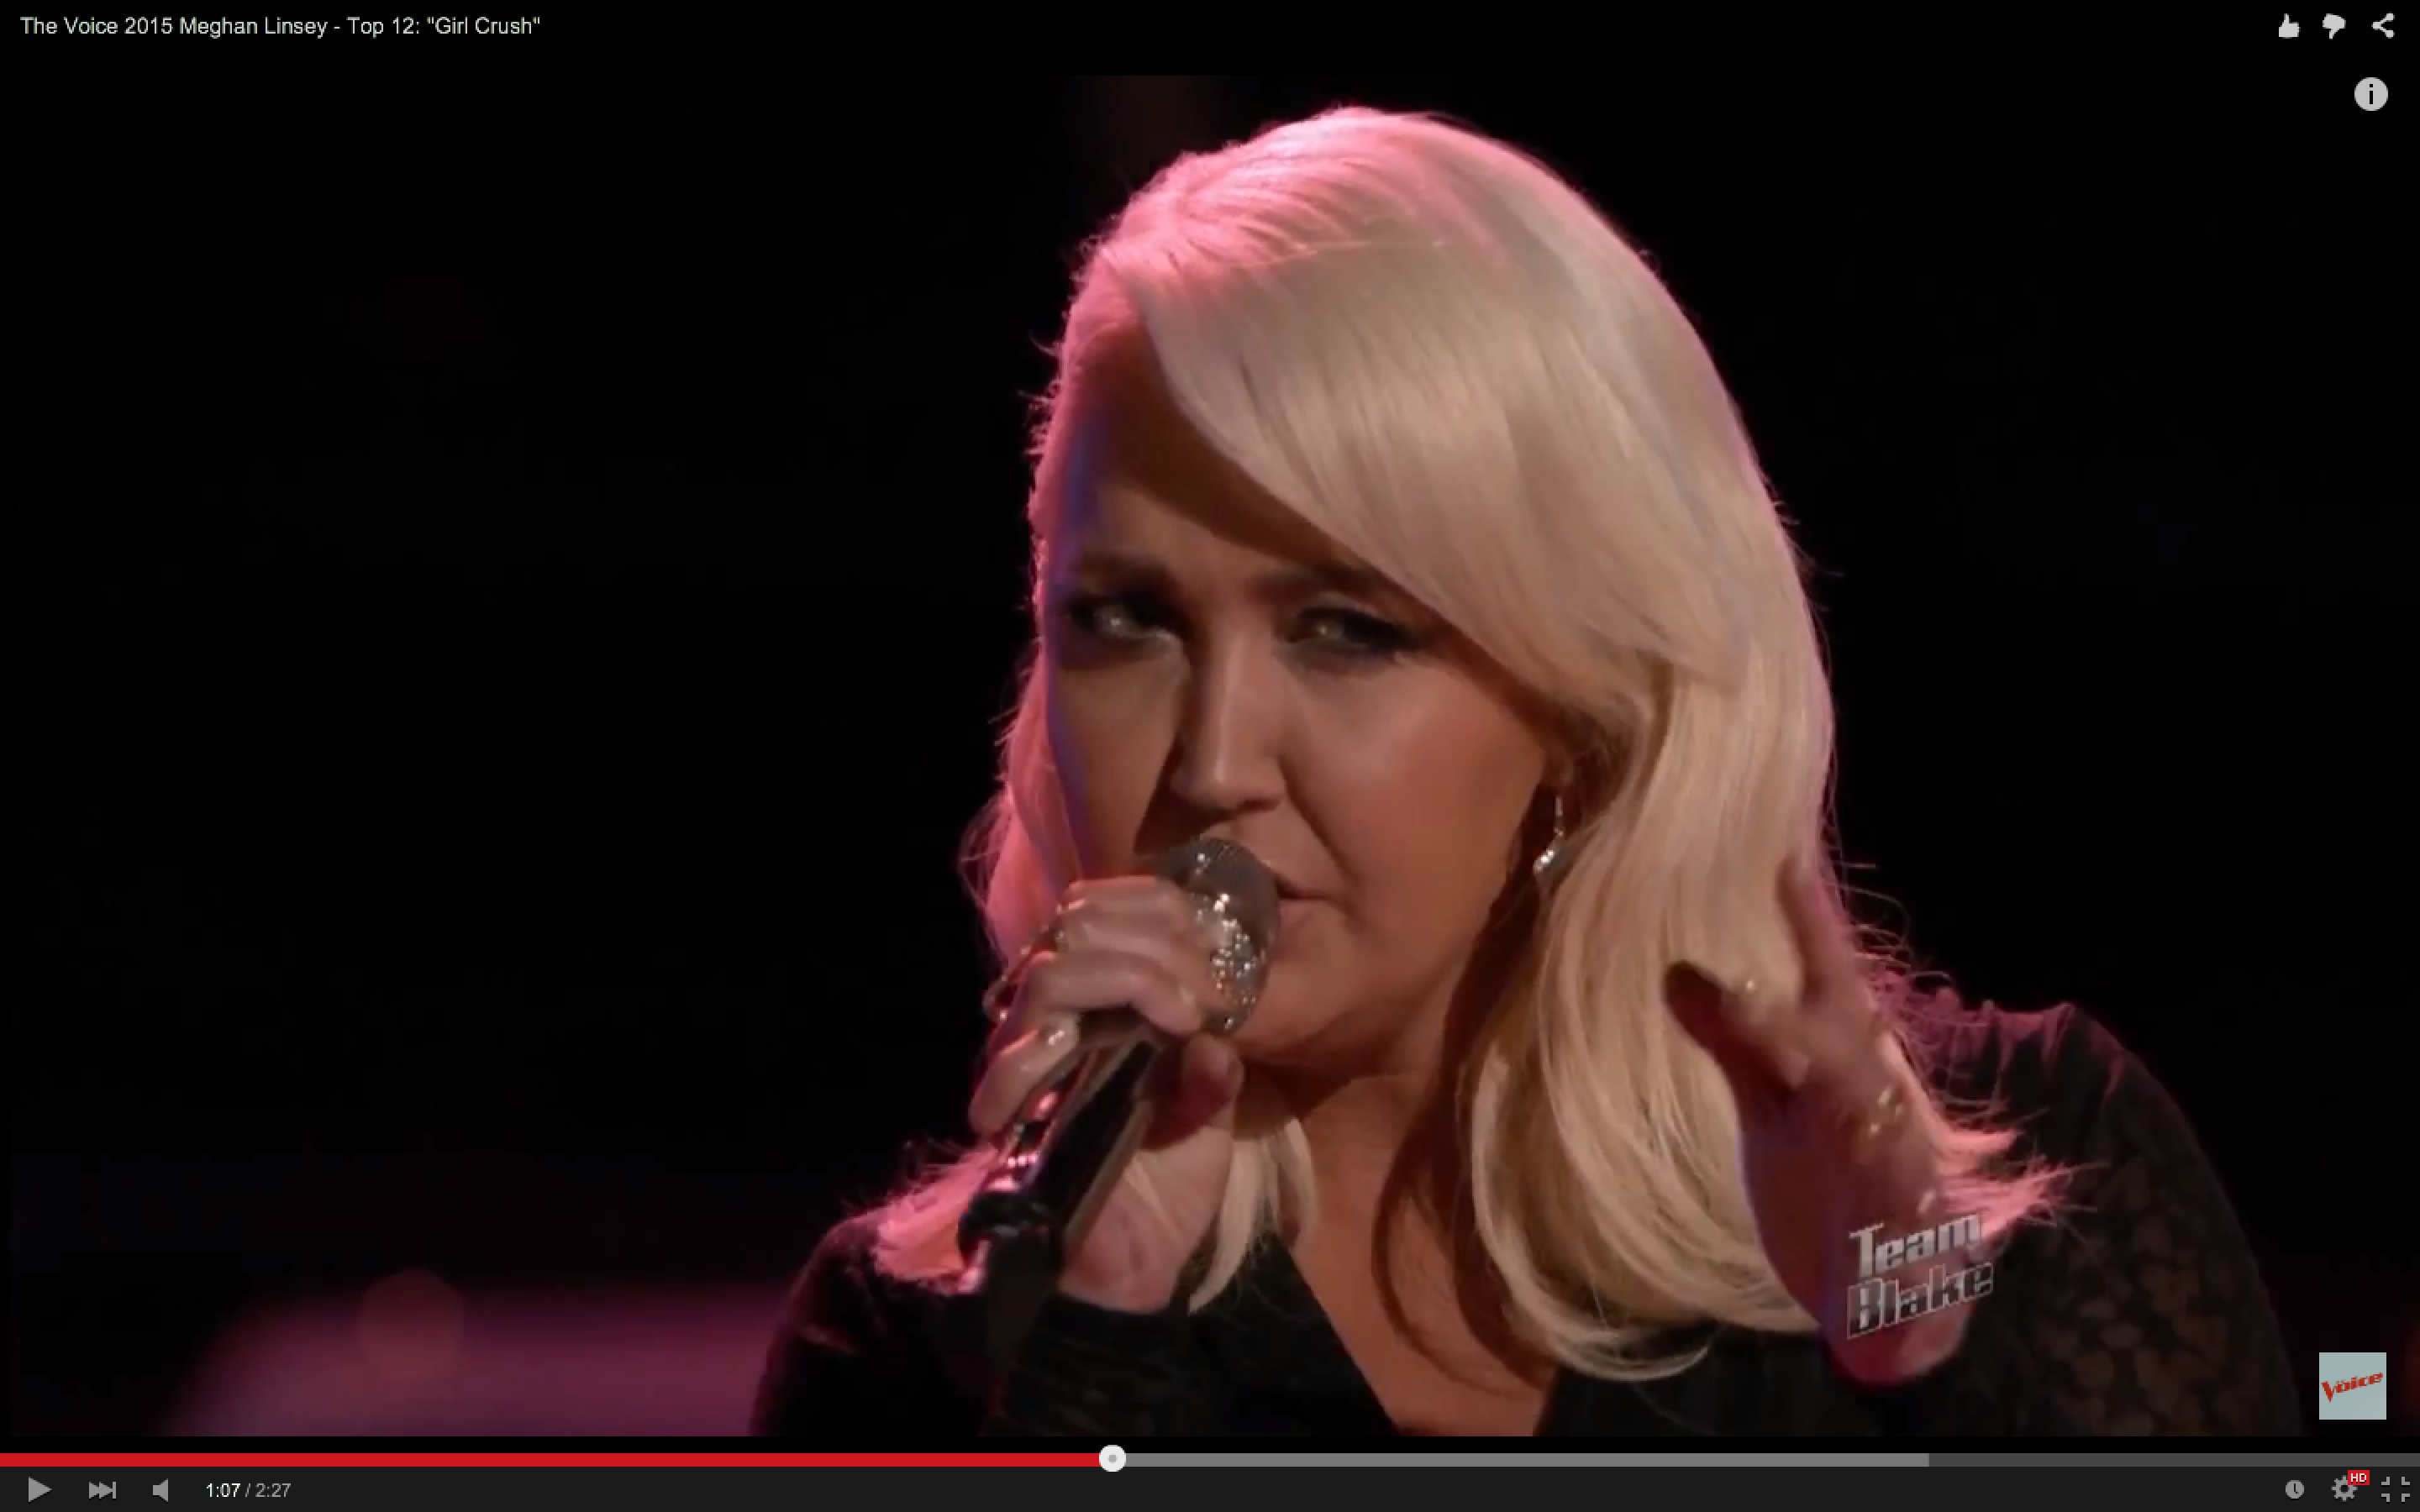 Watch 'The Voice' Finalist Meghan Linsey Cover 'Girl Crush